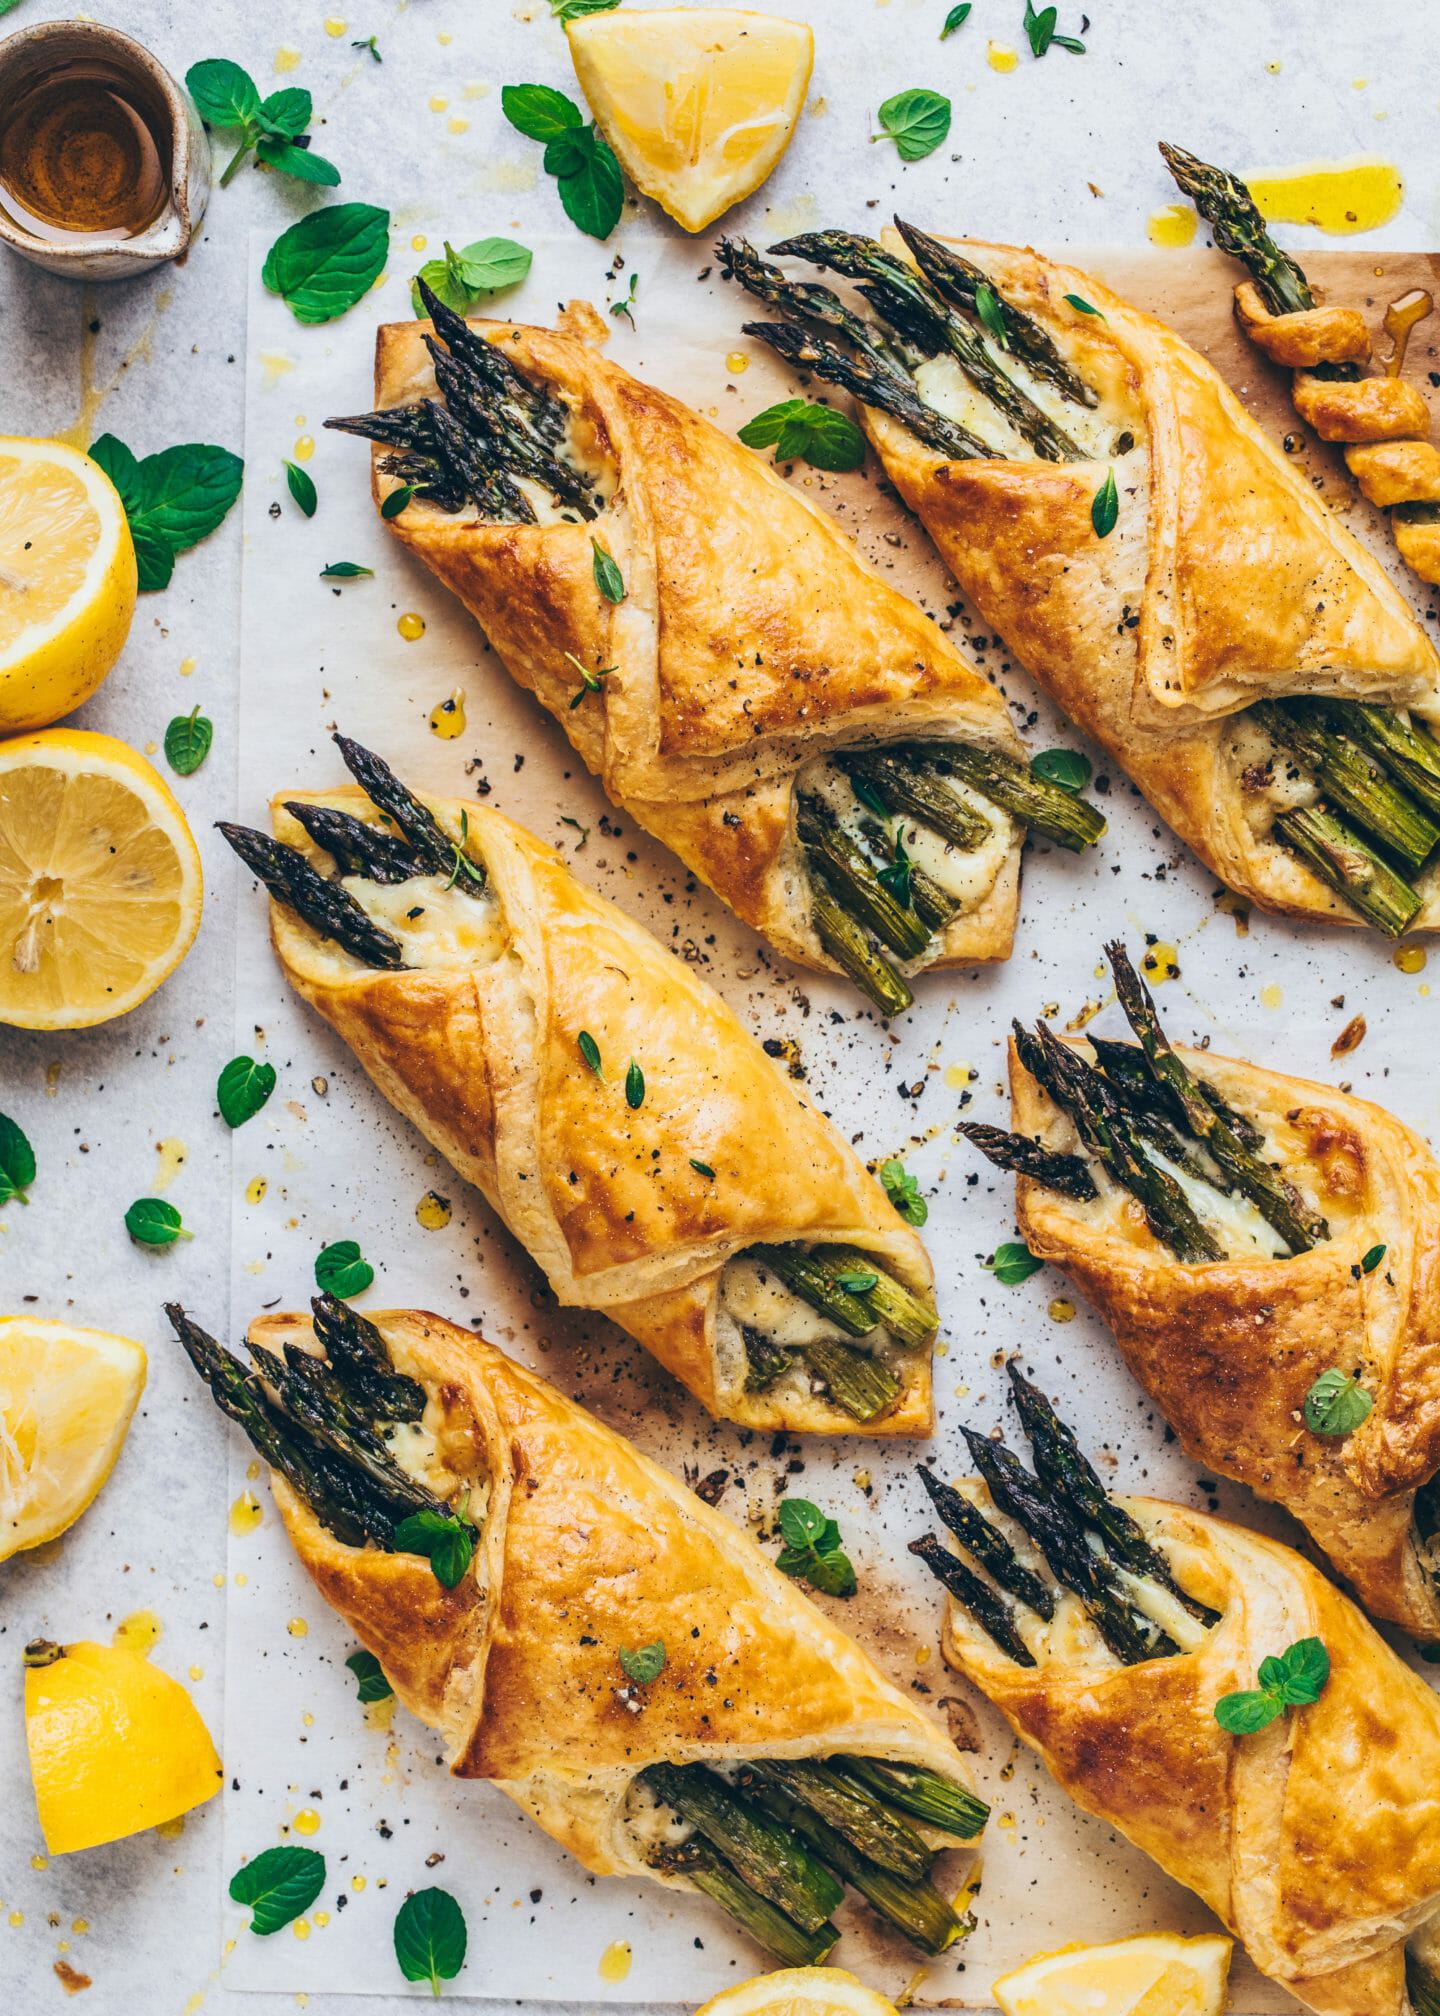 asparagus bundles and cheese wrapped in puff pastry with lemon on the side